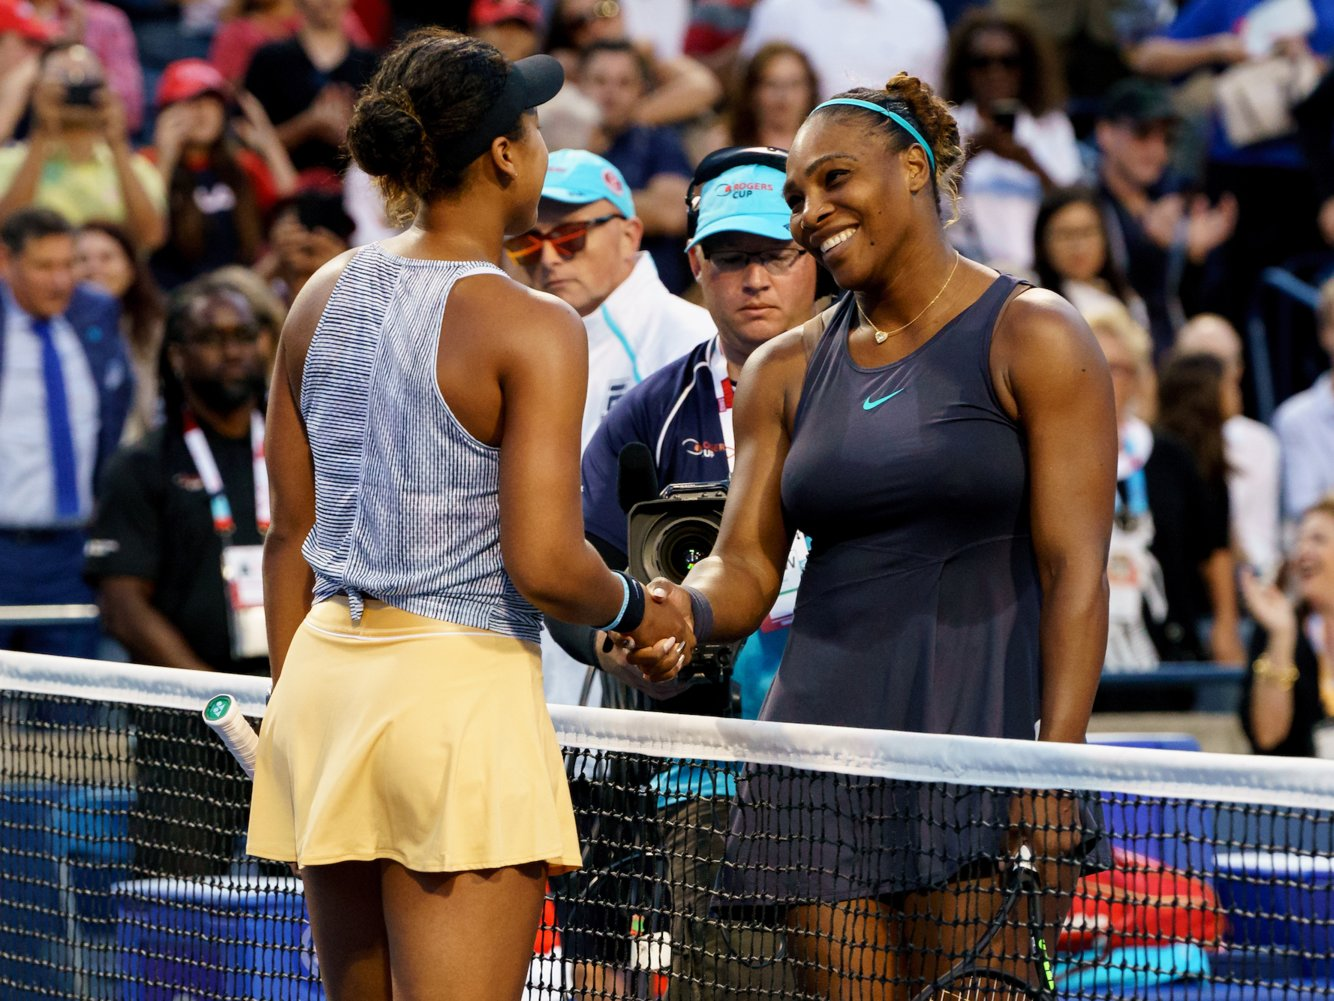 Naomi Osaka has been eliminated from the 2019 US Open, which means Serena Williams is now the only Grand Slam winner left in the tournament